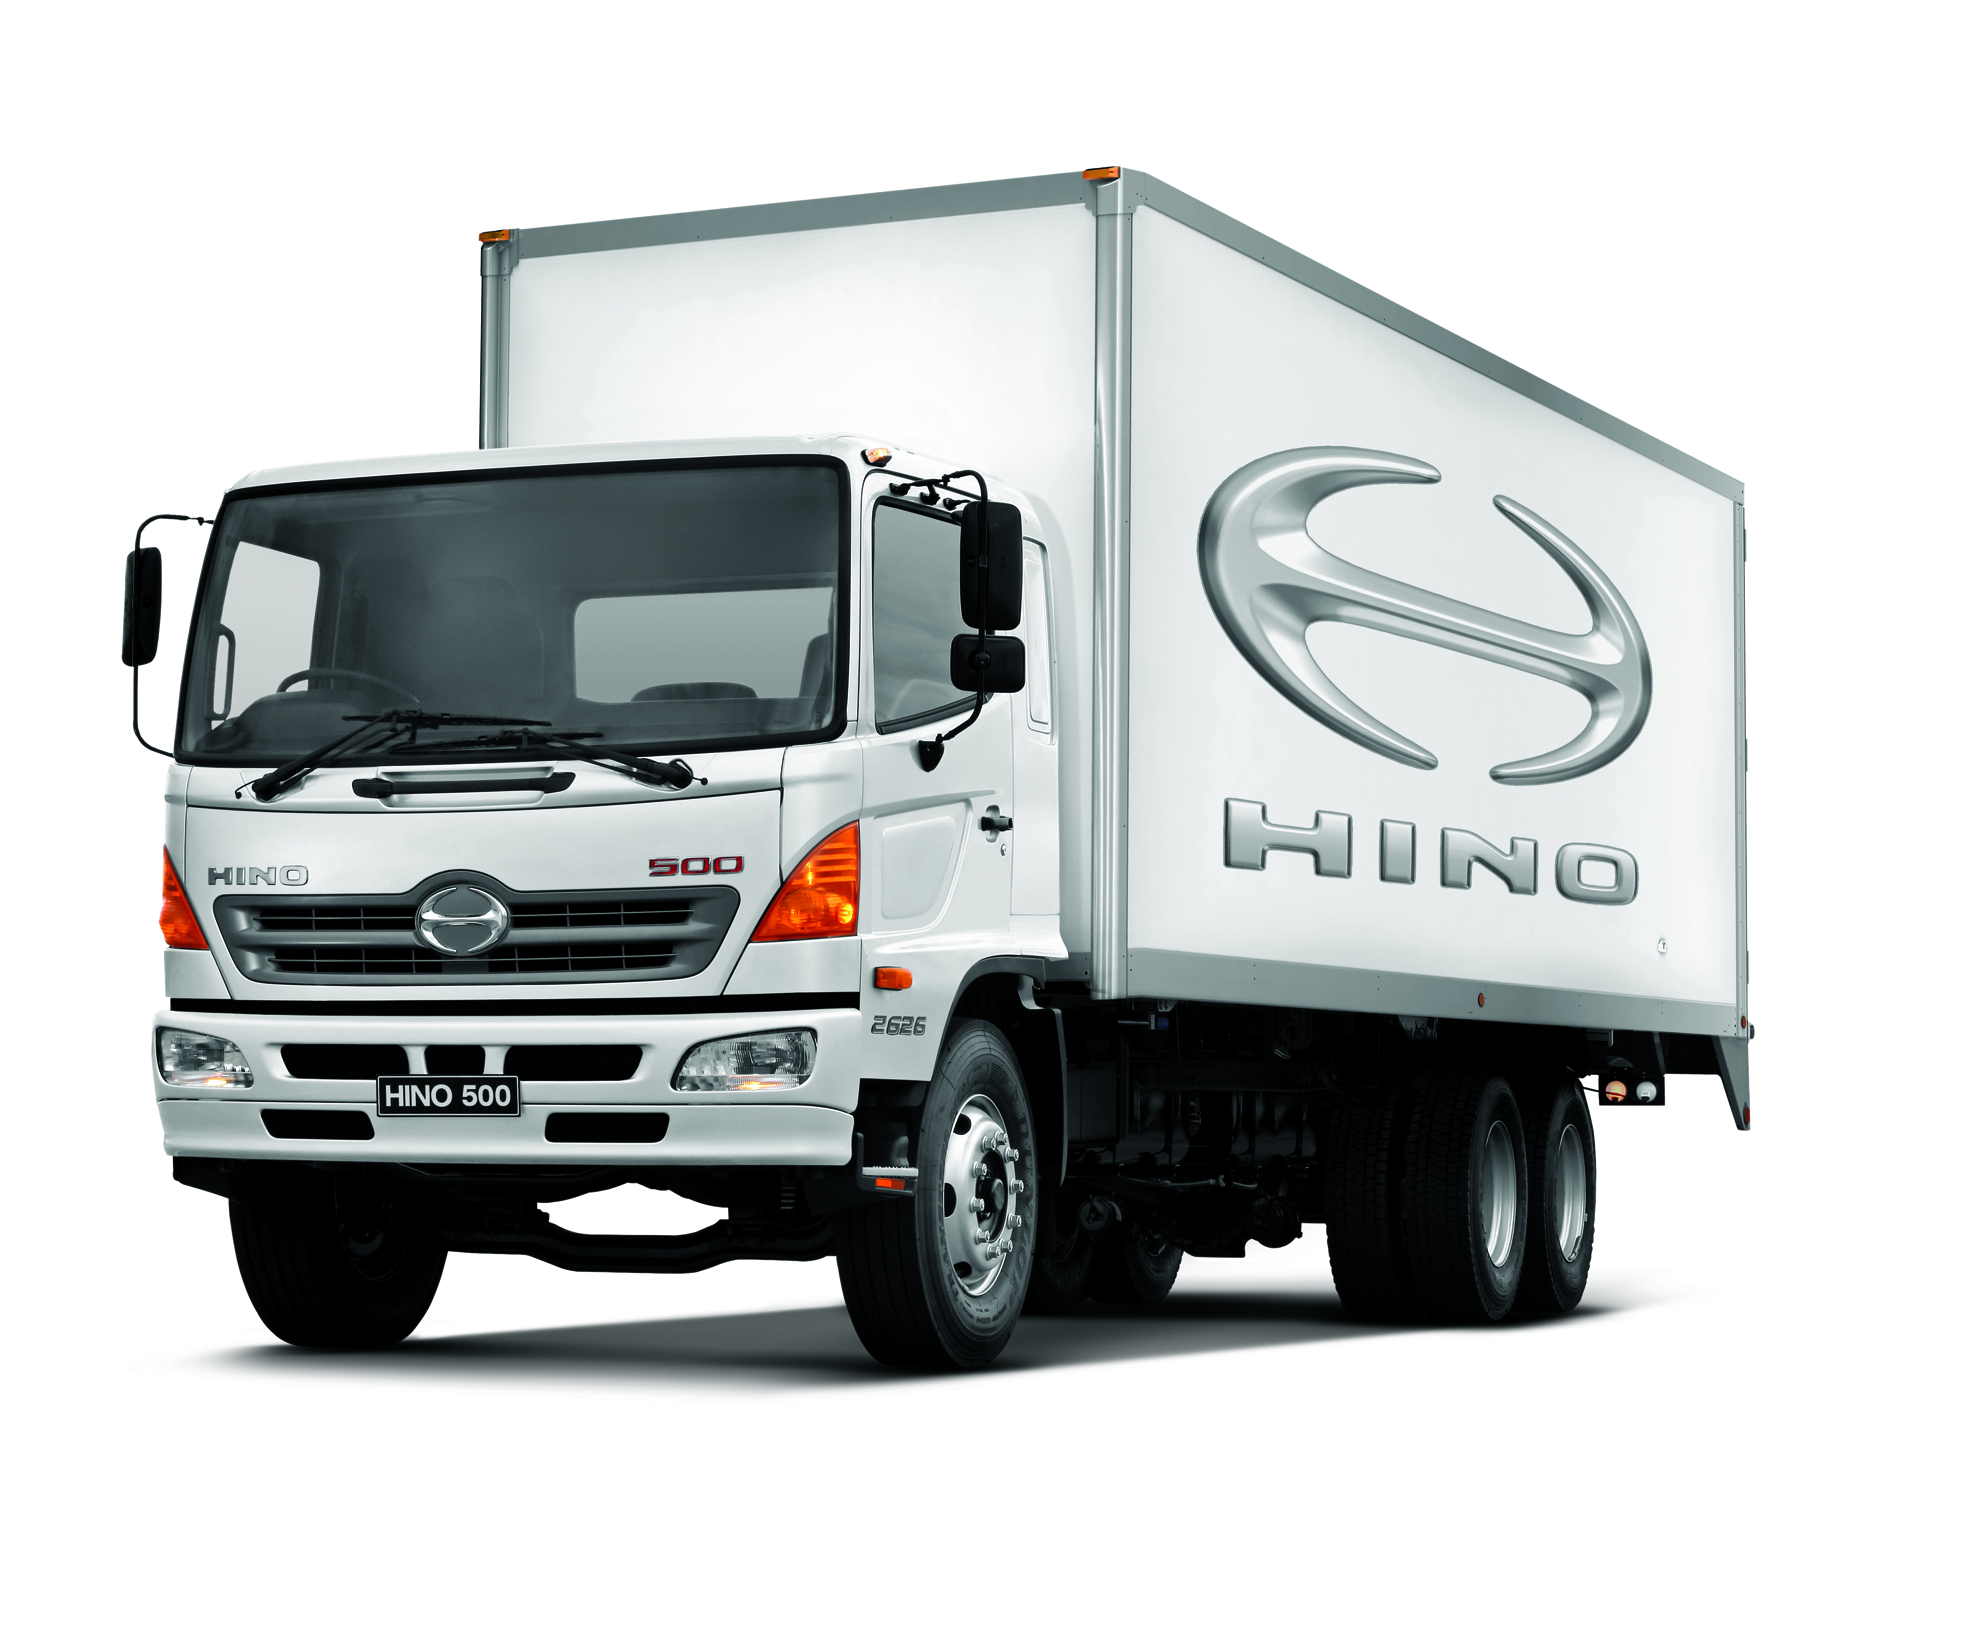 Toyota Trucks Used >> Hino Trucks South Africa add Hino 500 Truck Range